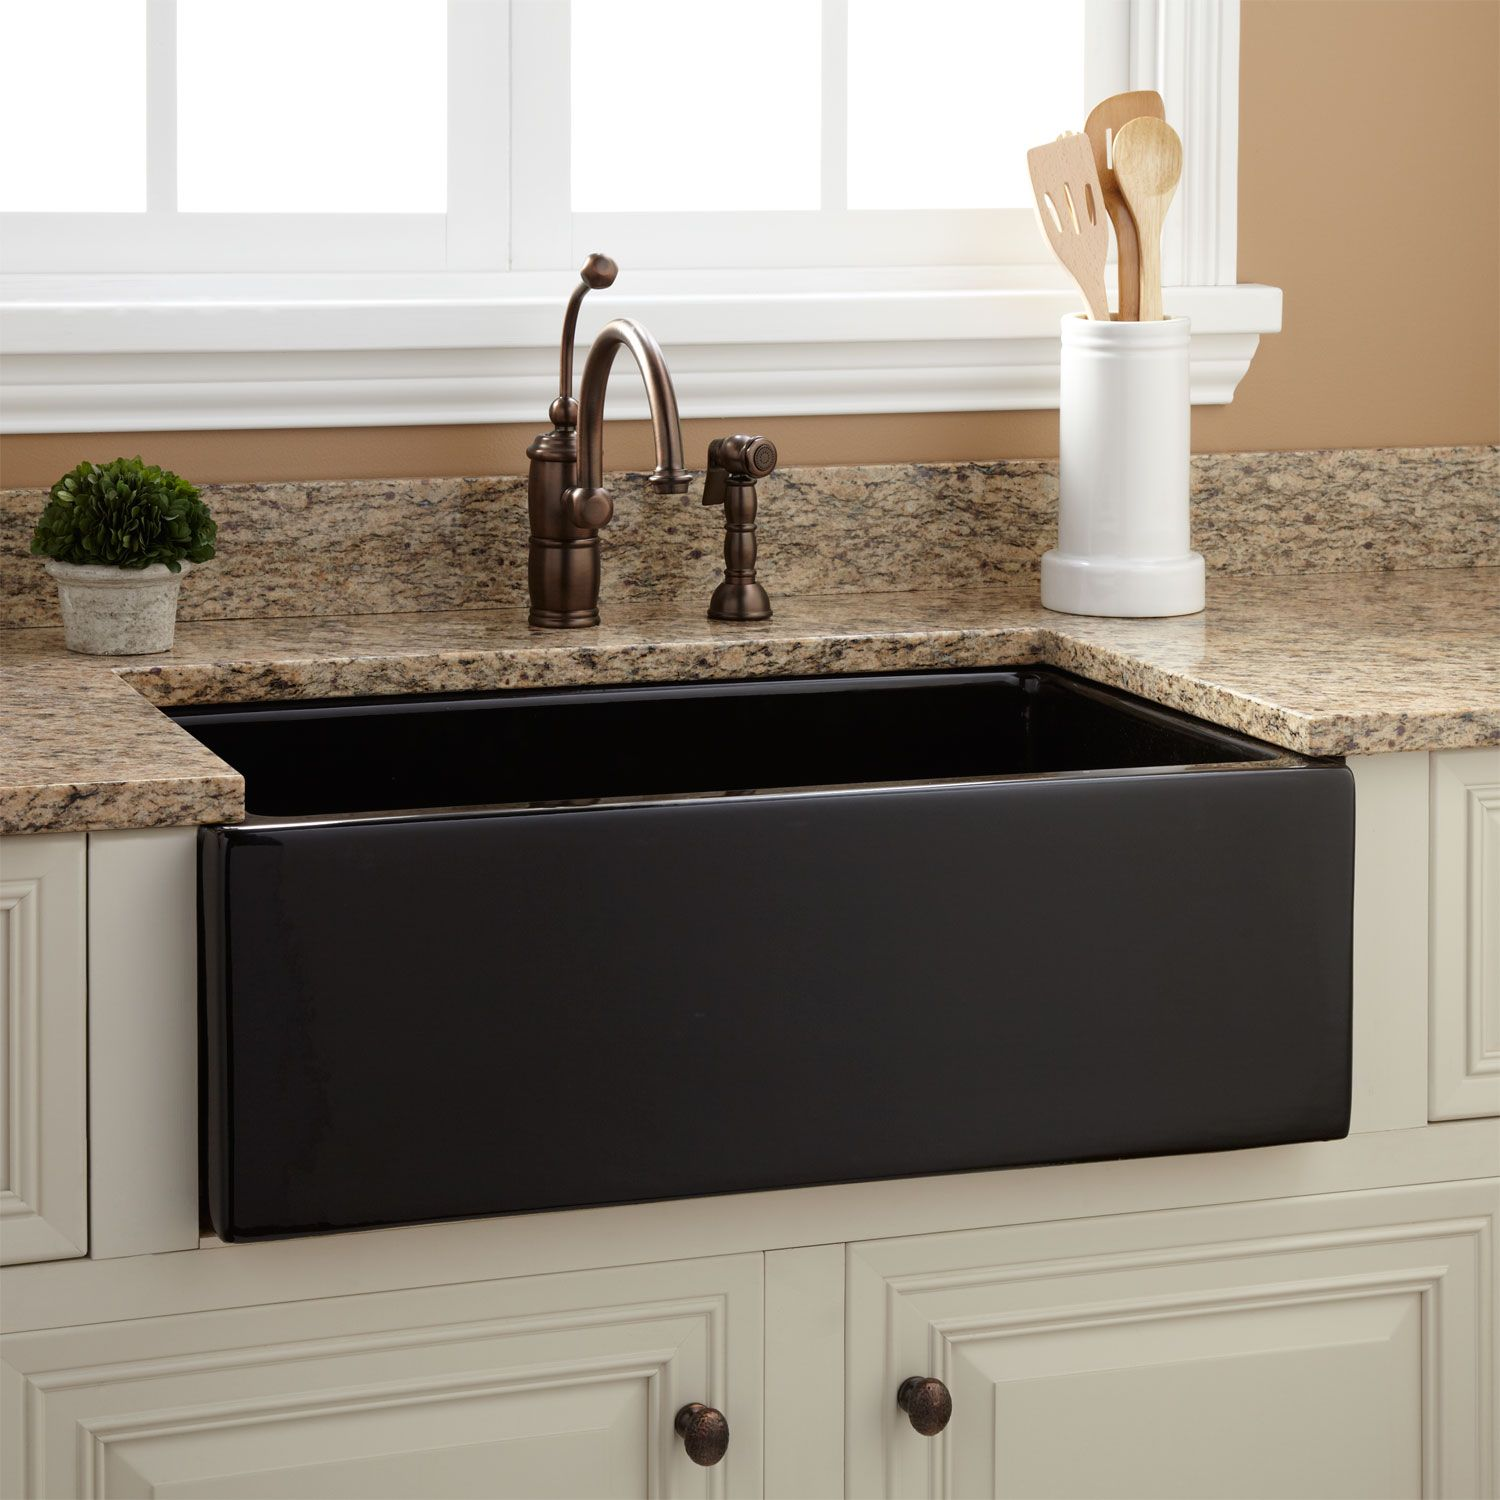 17 best ideas about black farmhouse sink on pinterest